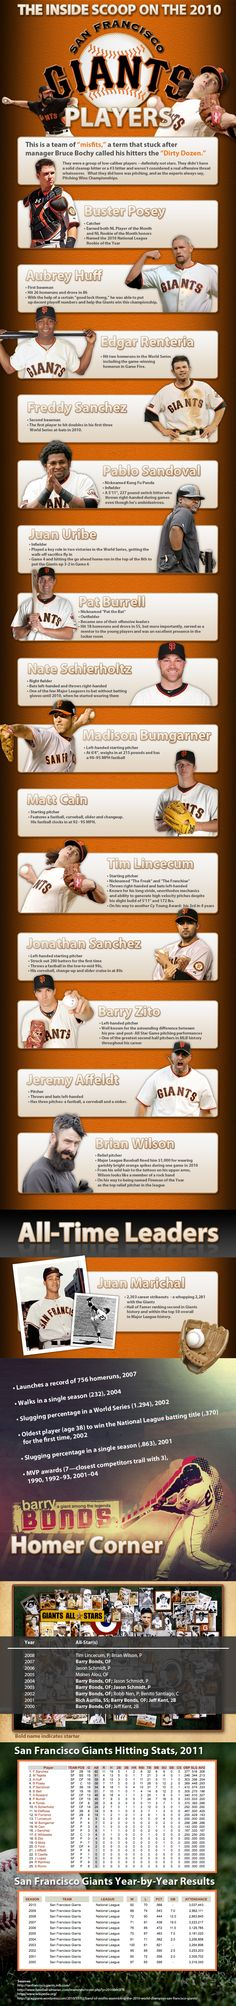 San Francisco Giants Players